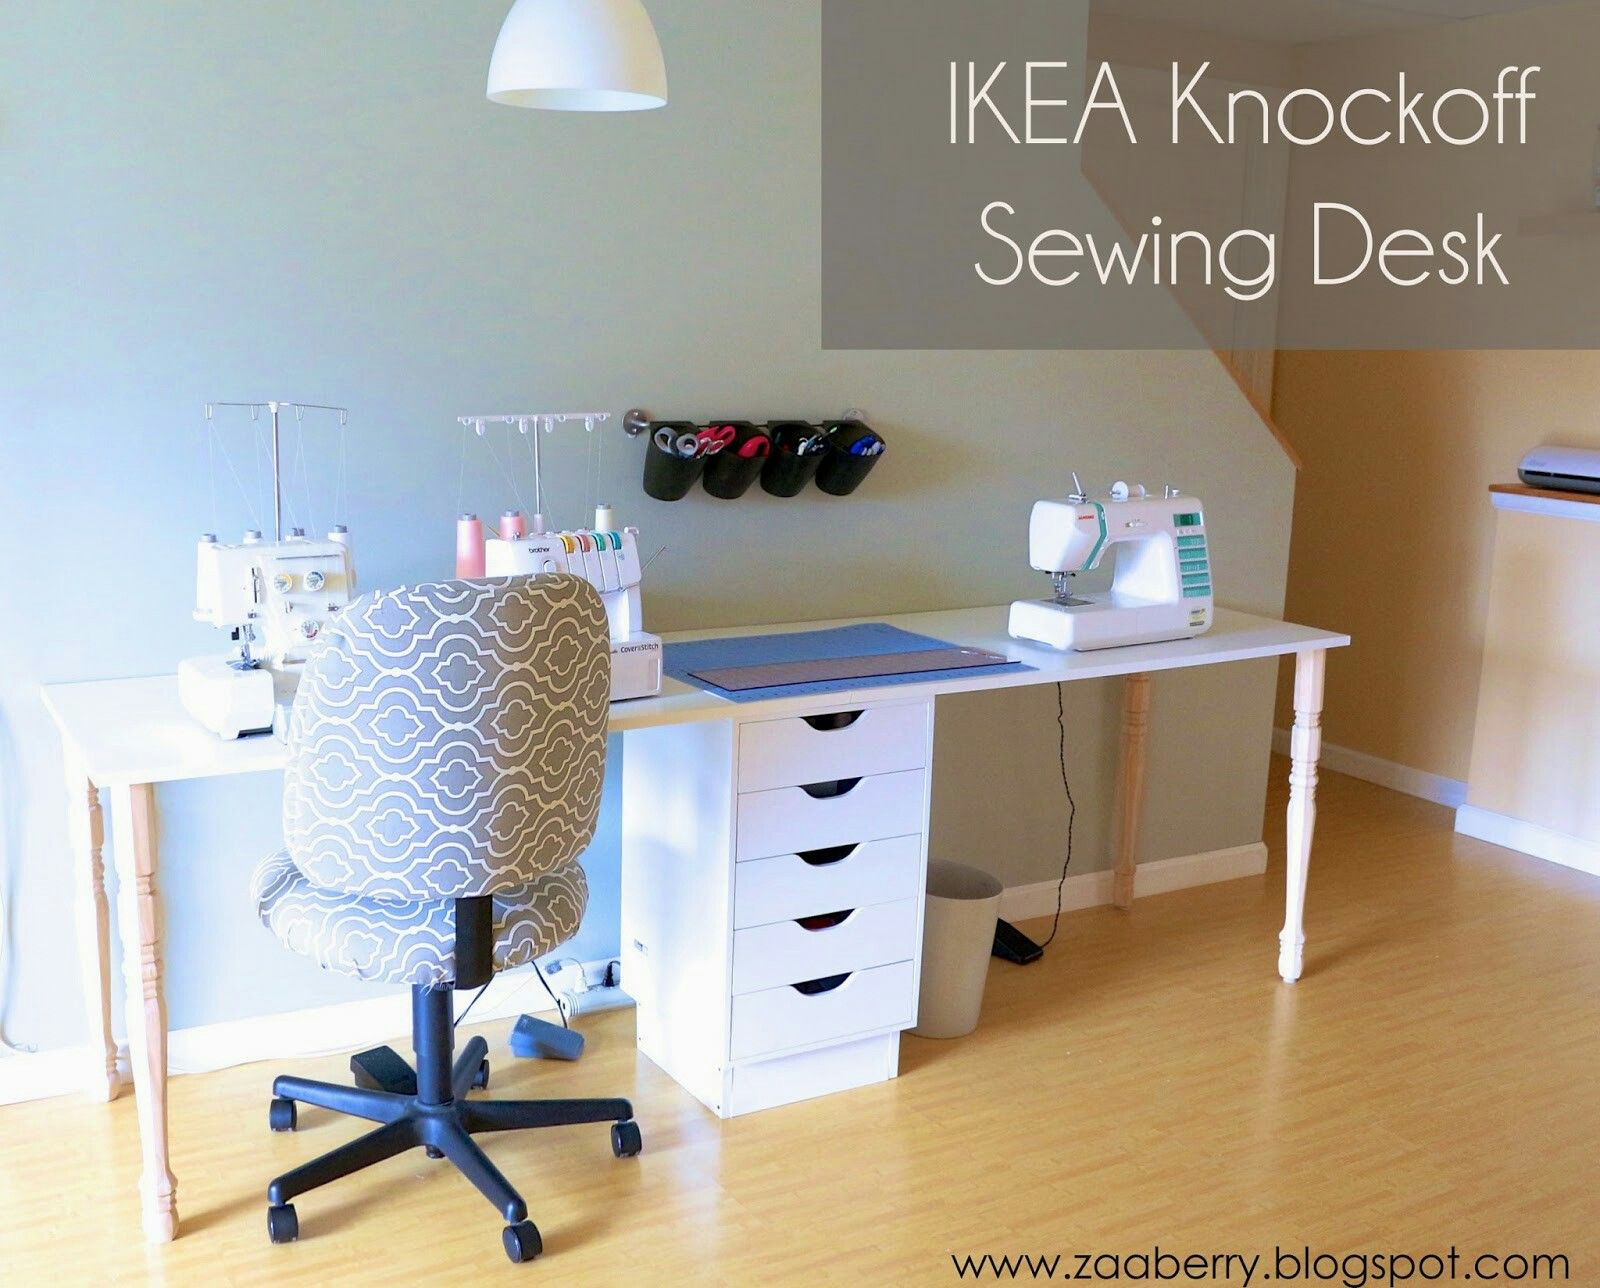 Diy sewing table ikea pin by lori gomez on sewing room  pinterest  sewing rooms